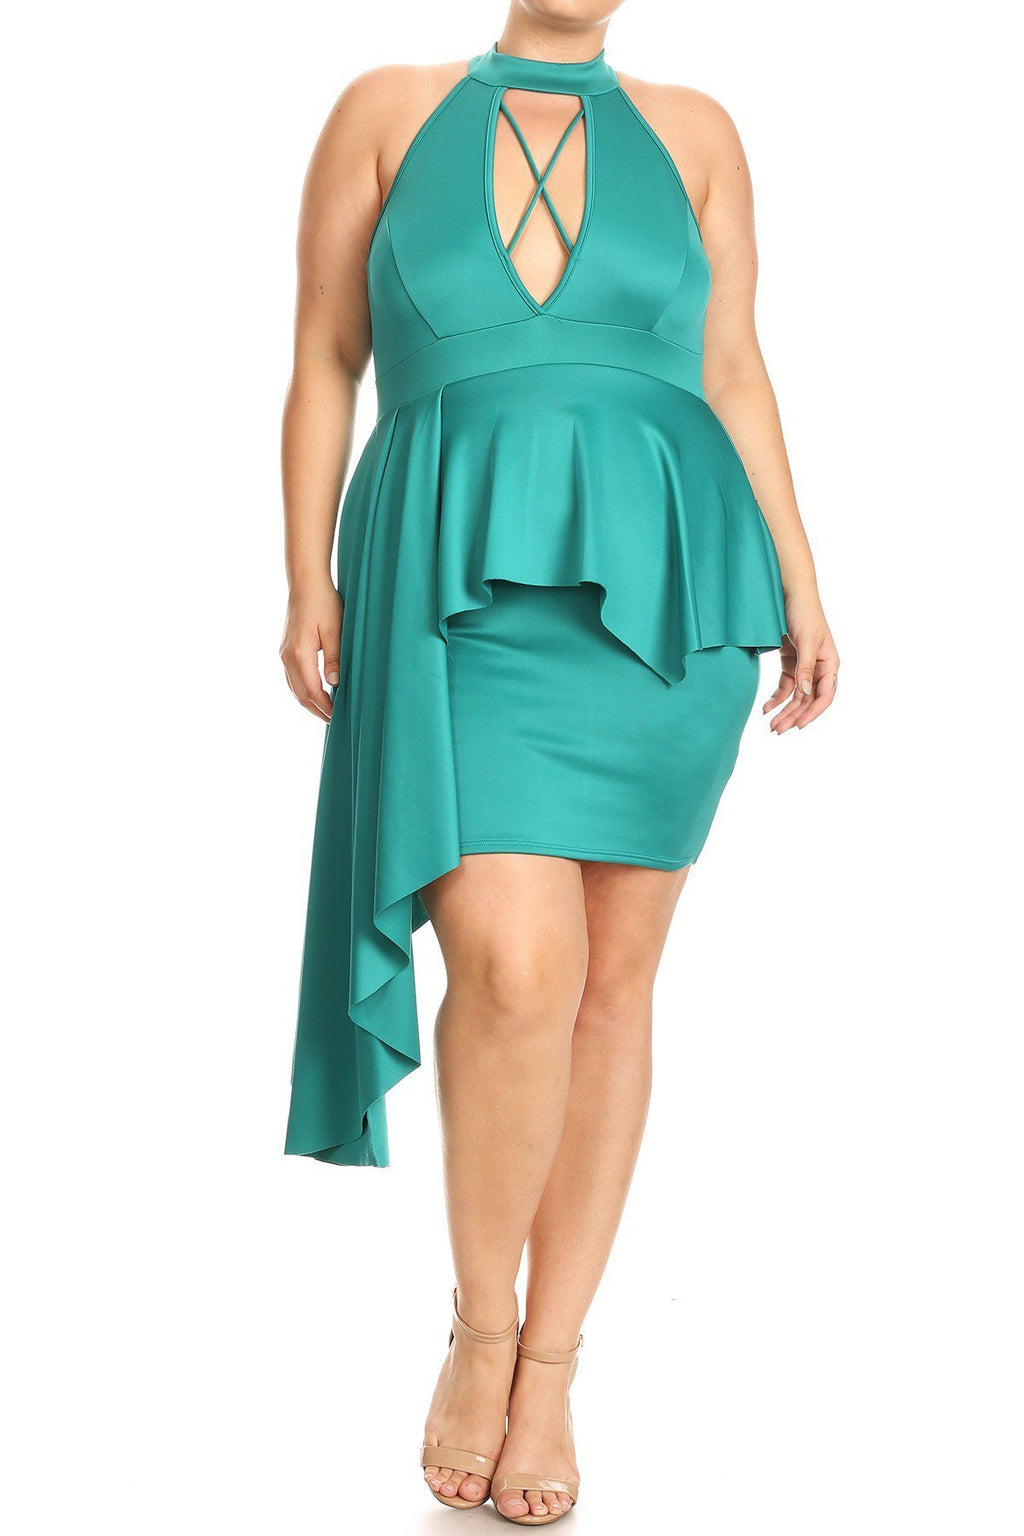 Plus Size Sexy Asymmetrical Criss Cross Peplum Dress [SALE]